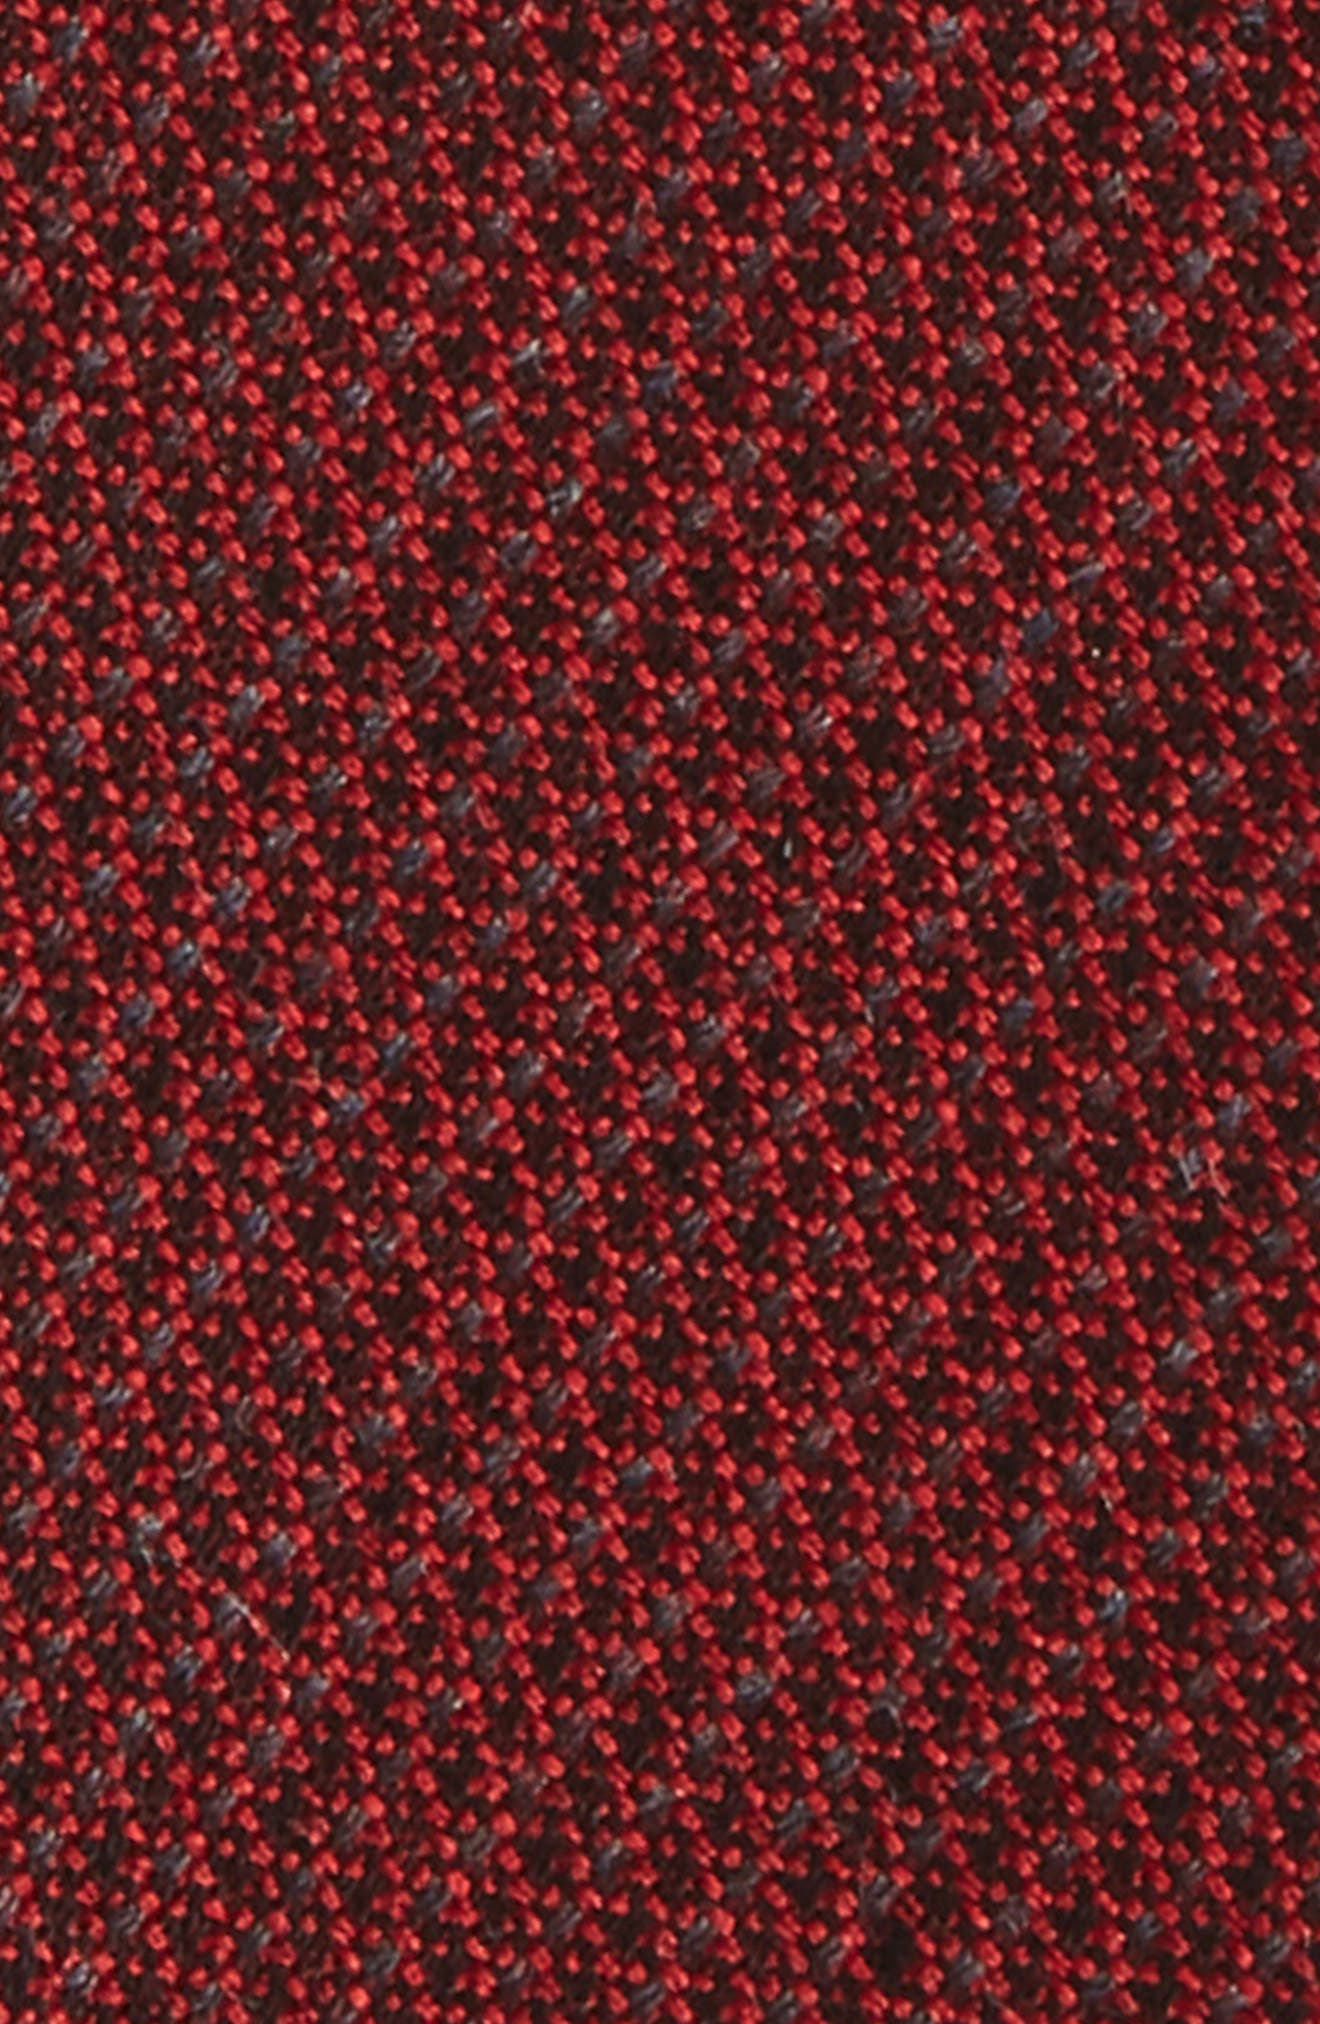 CALIBRATE,                             Red Classics Bow Tie,                             Alternate thumbnail 3, color,                             600